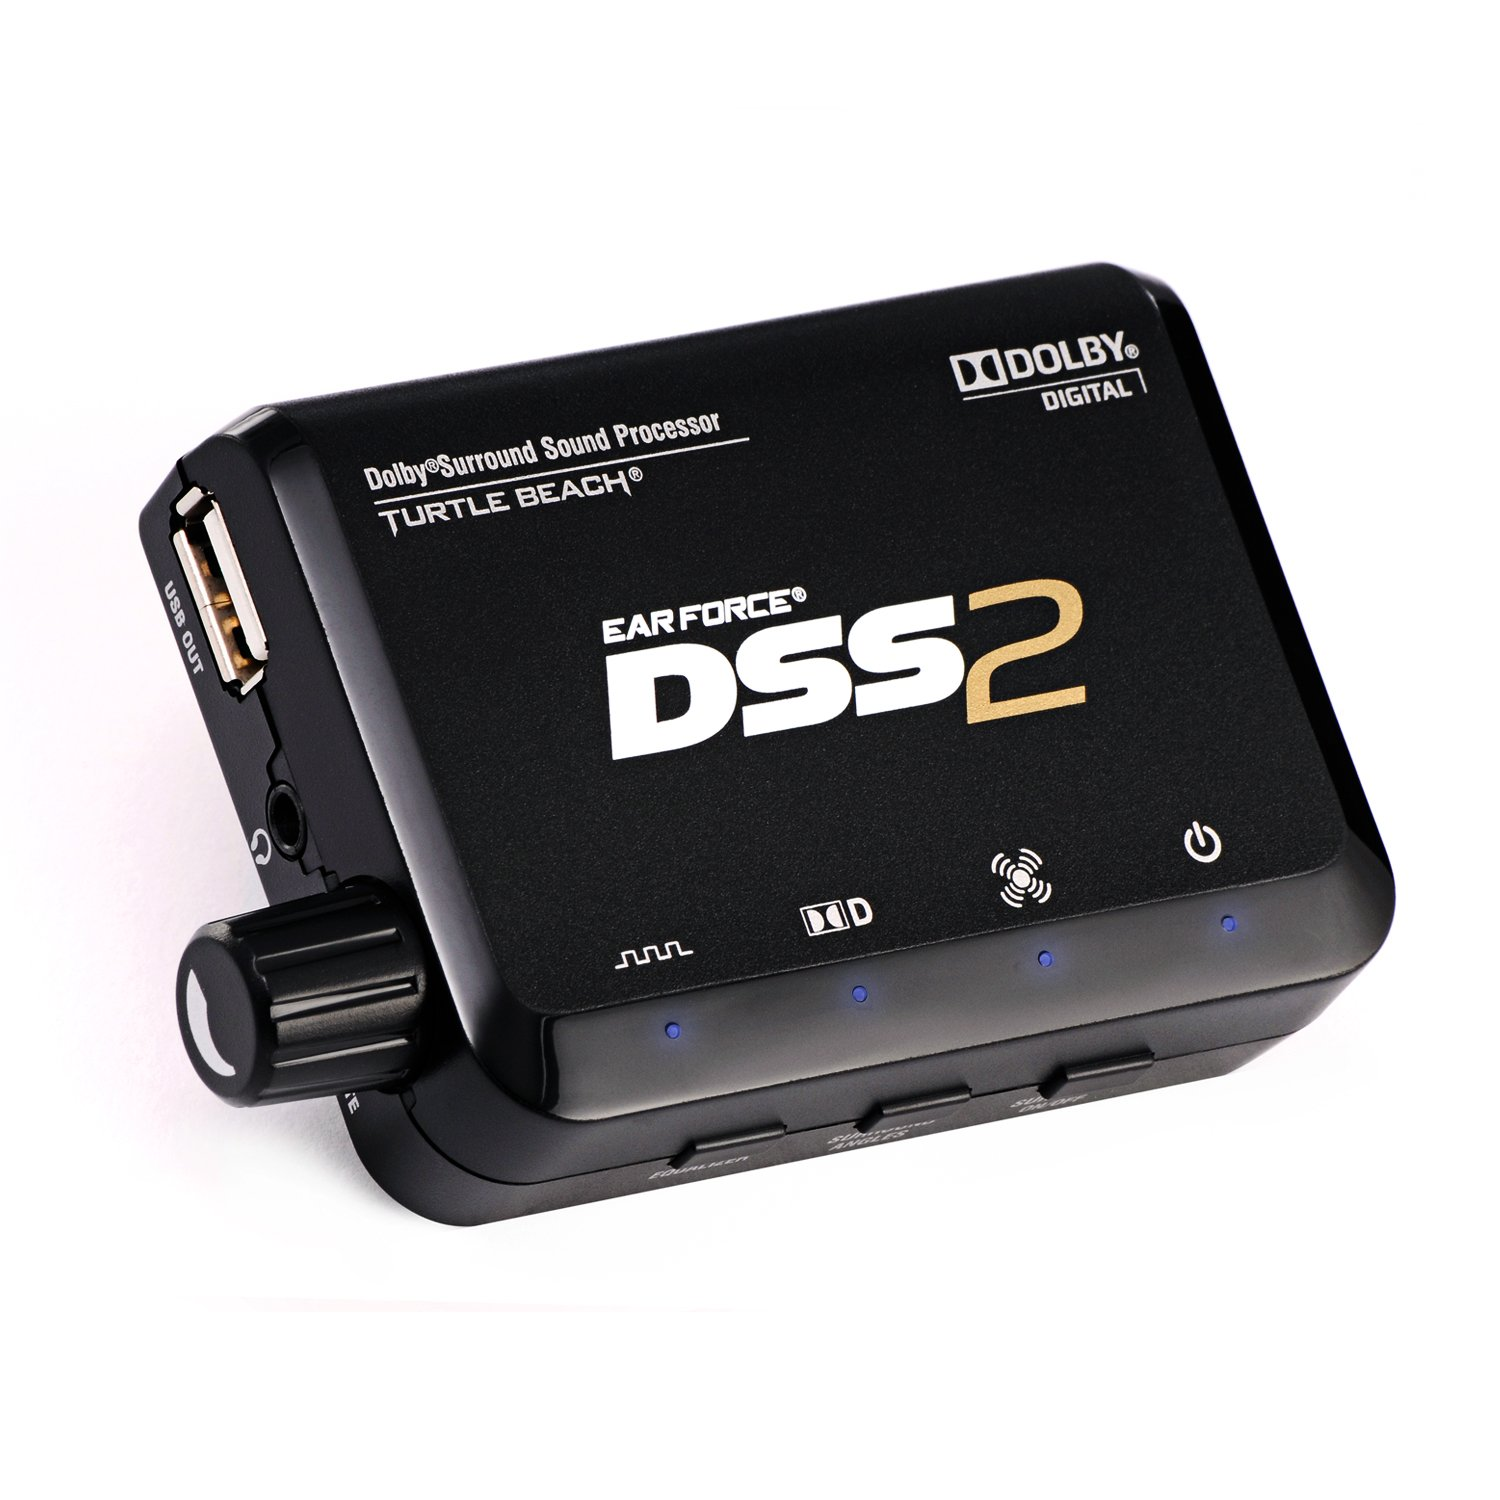 Dolby surround sound processor - Ear Force DSS 2 Turtle Beach TBS-2201-01